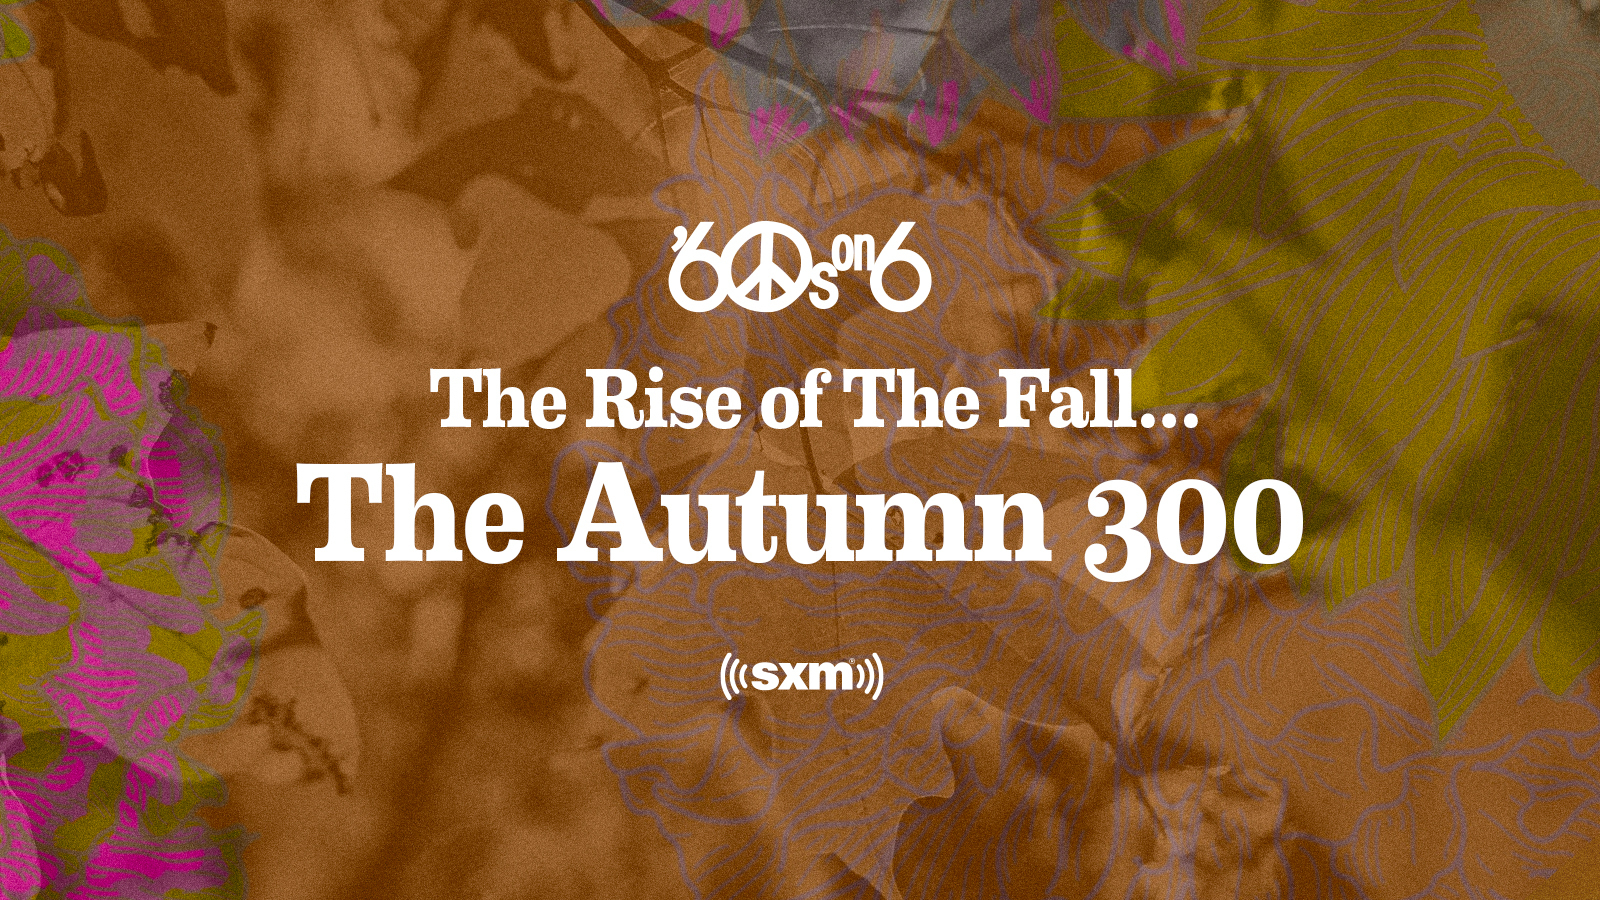 Vote for your favorite autumn songs from the '60s, then hear them Thanksgiving weekend